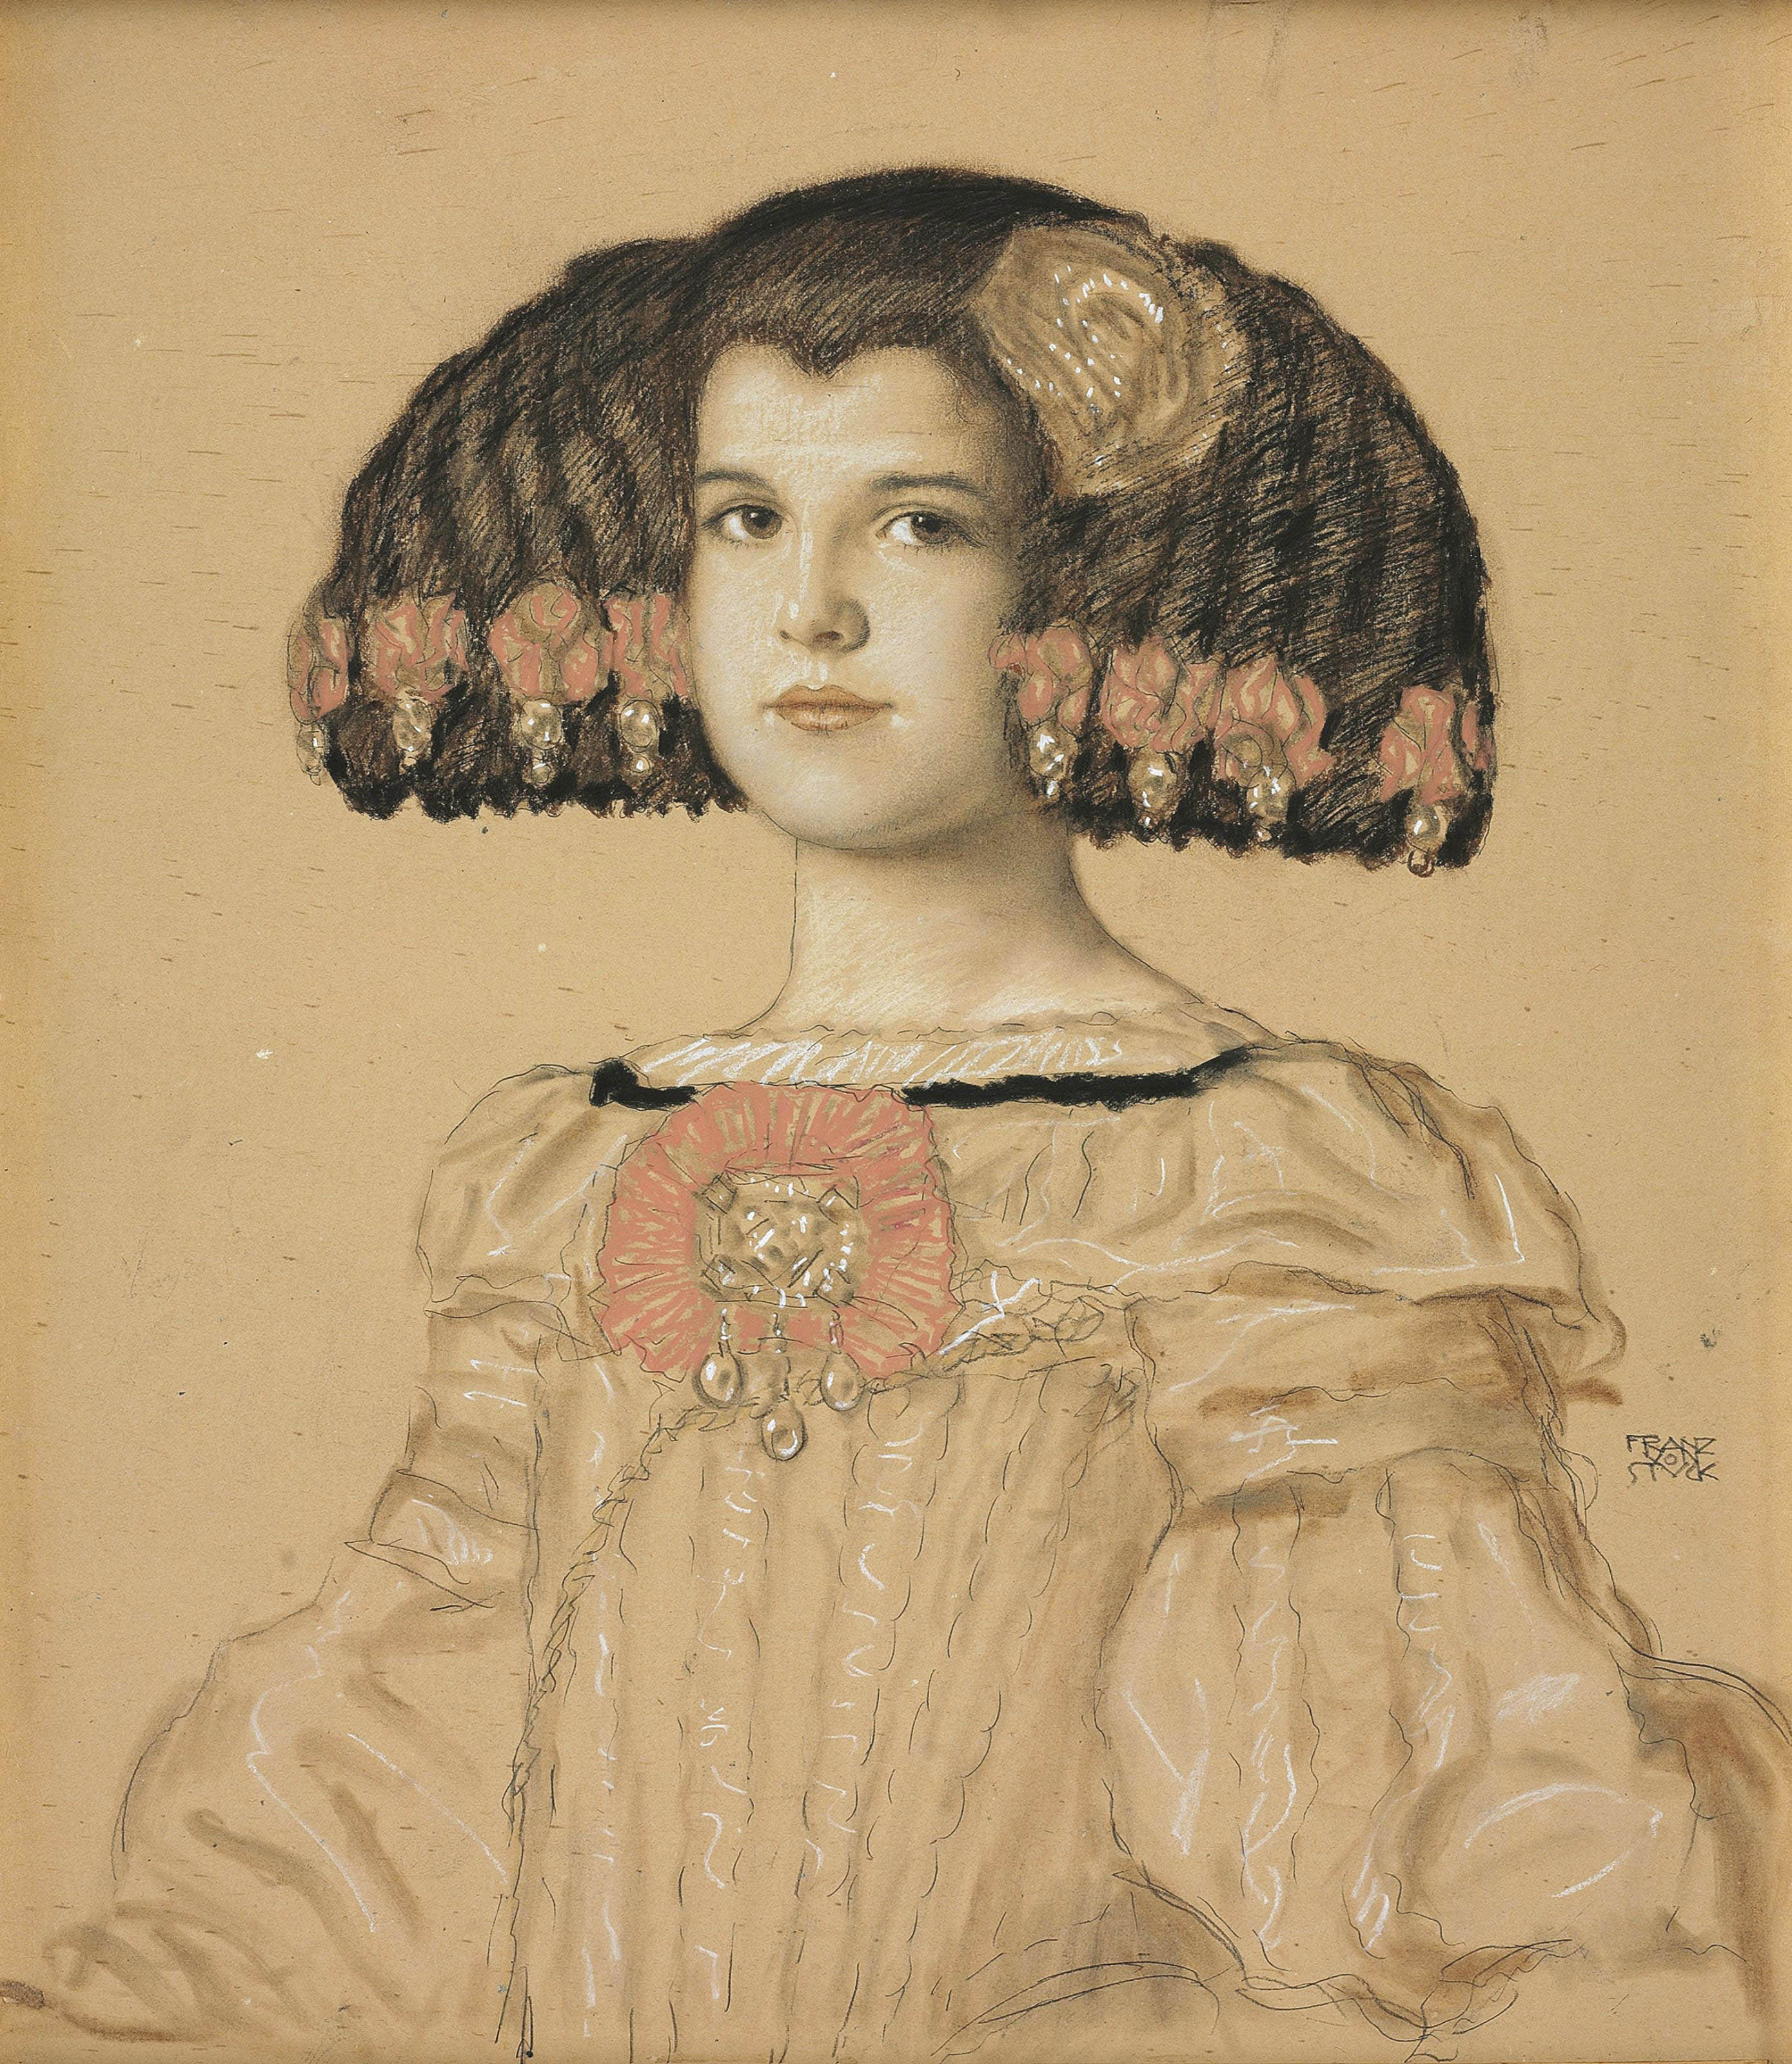 Portrait of Mary, the artist's daughter, in Spanish costume